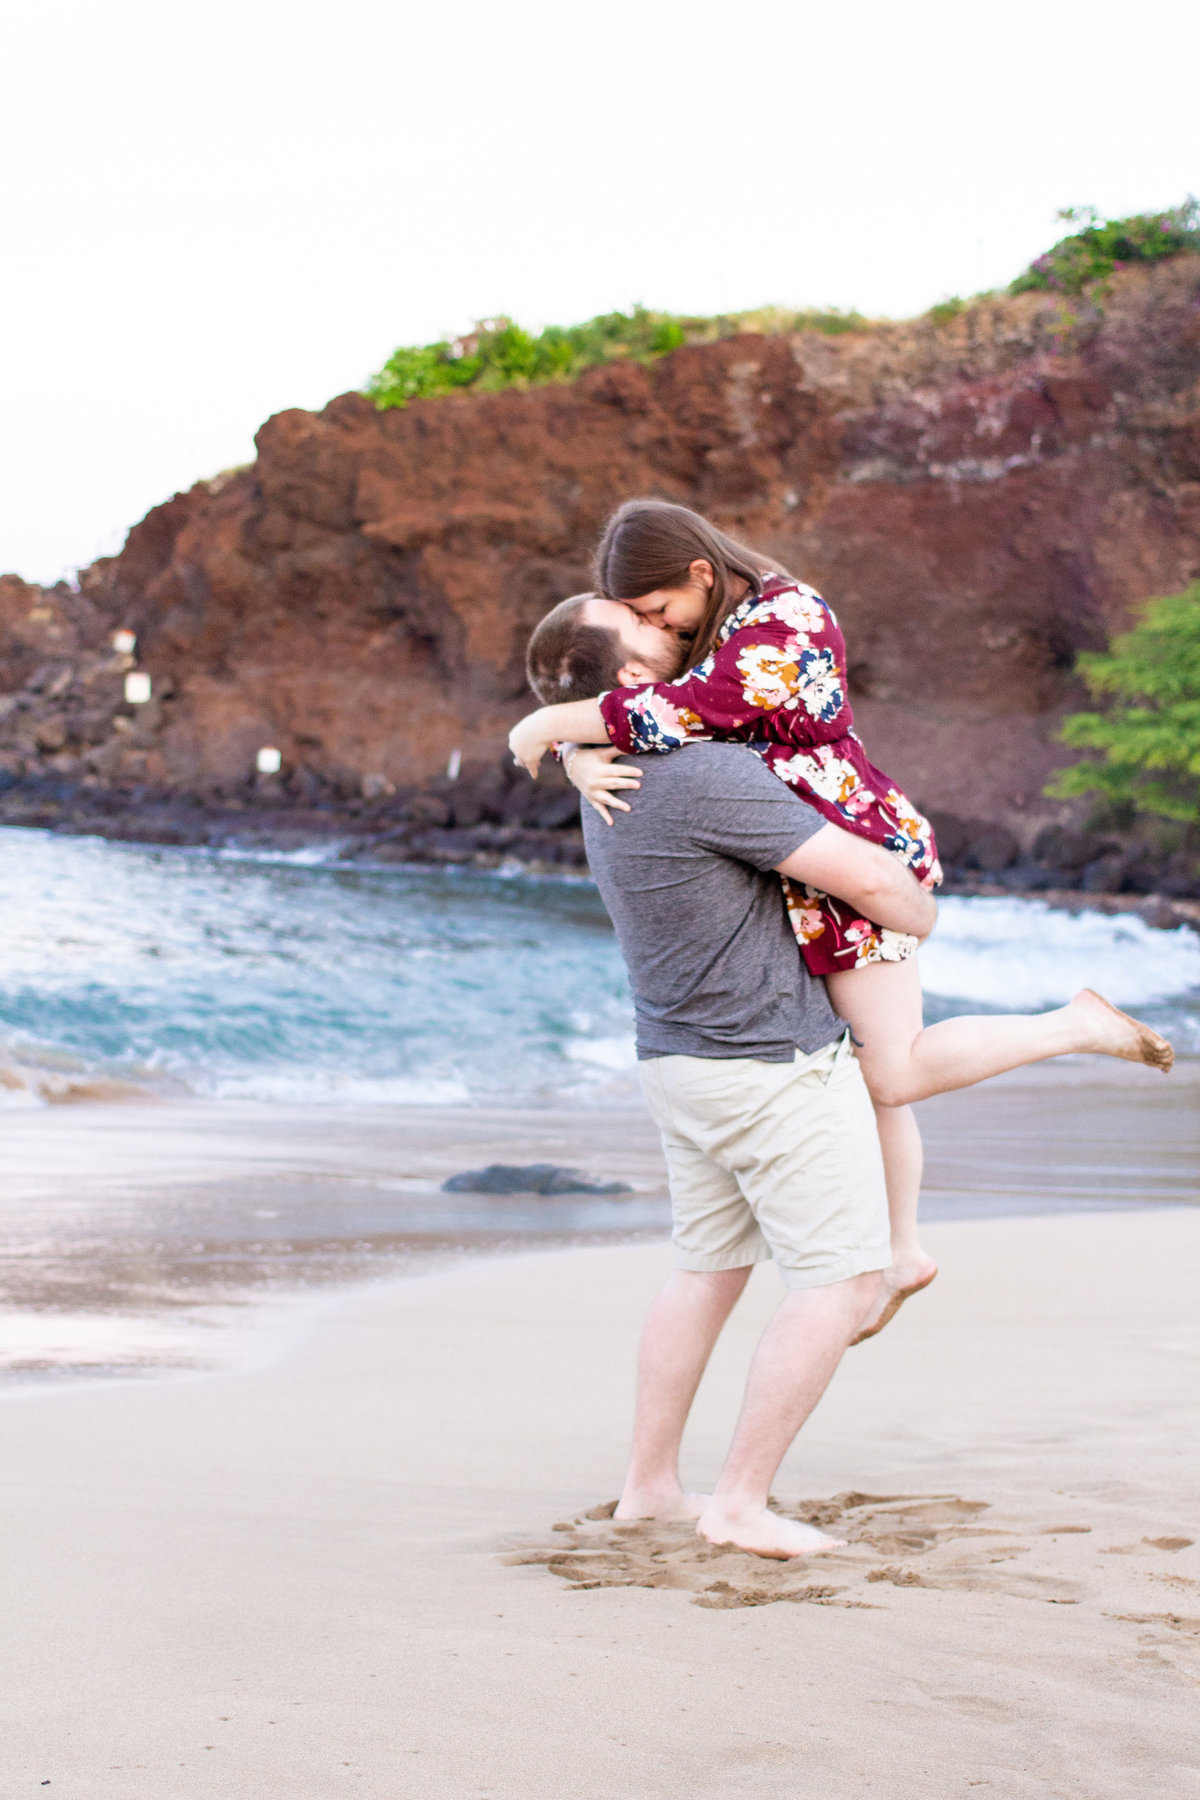 Couple does a lift kiss at the beach in Maui, Hawaii during the destination engagement photo session